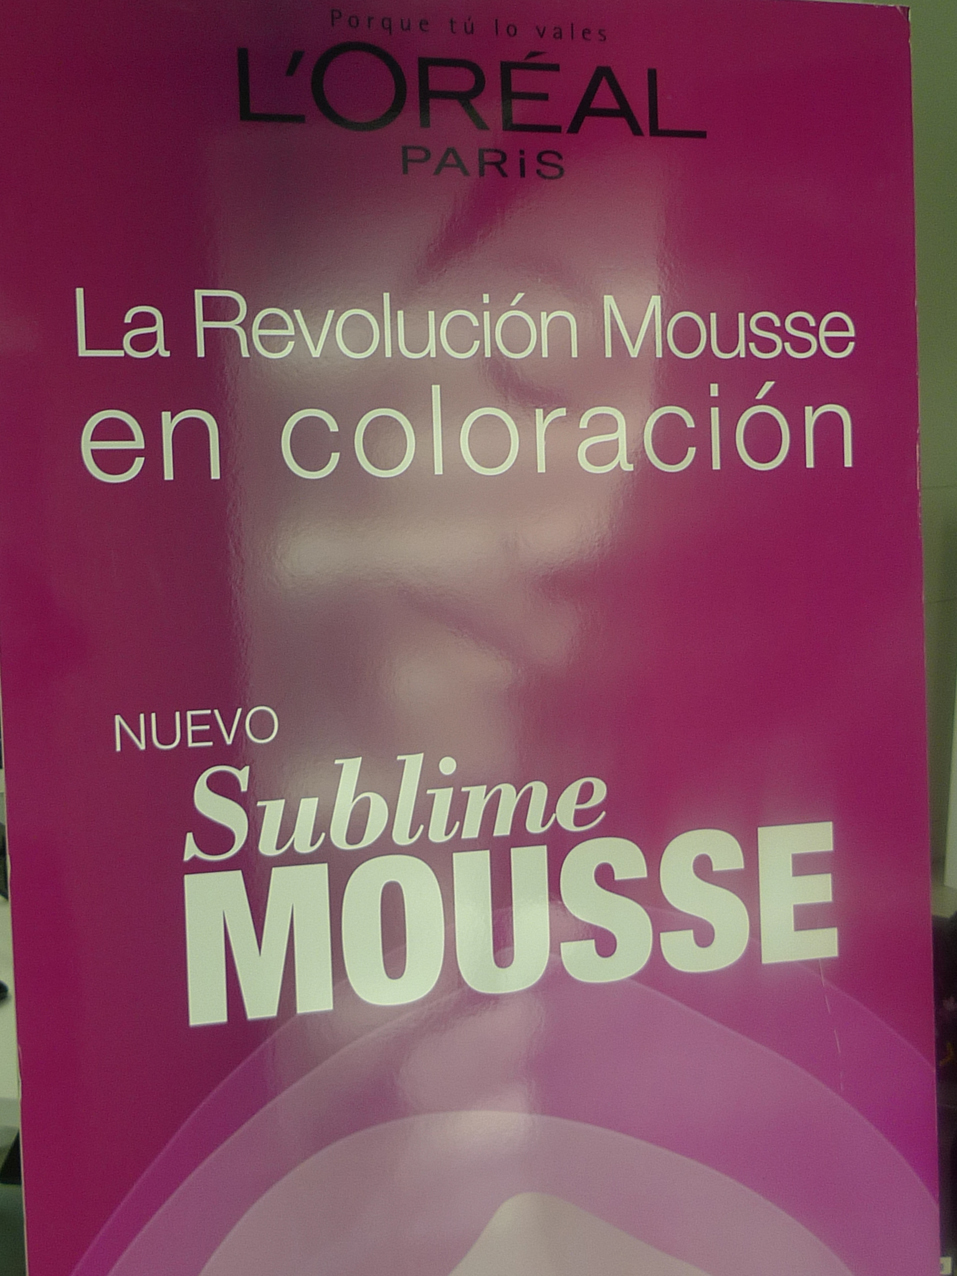 Cartel de la nueva coloración en mousse de L'Oréal Paris